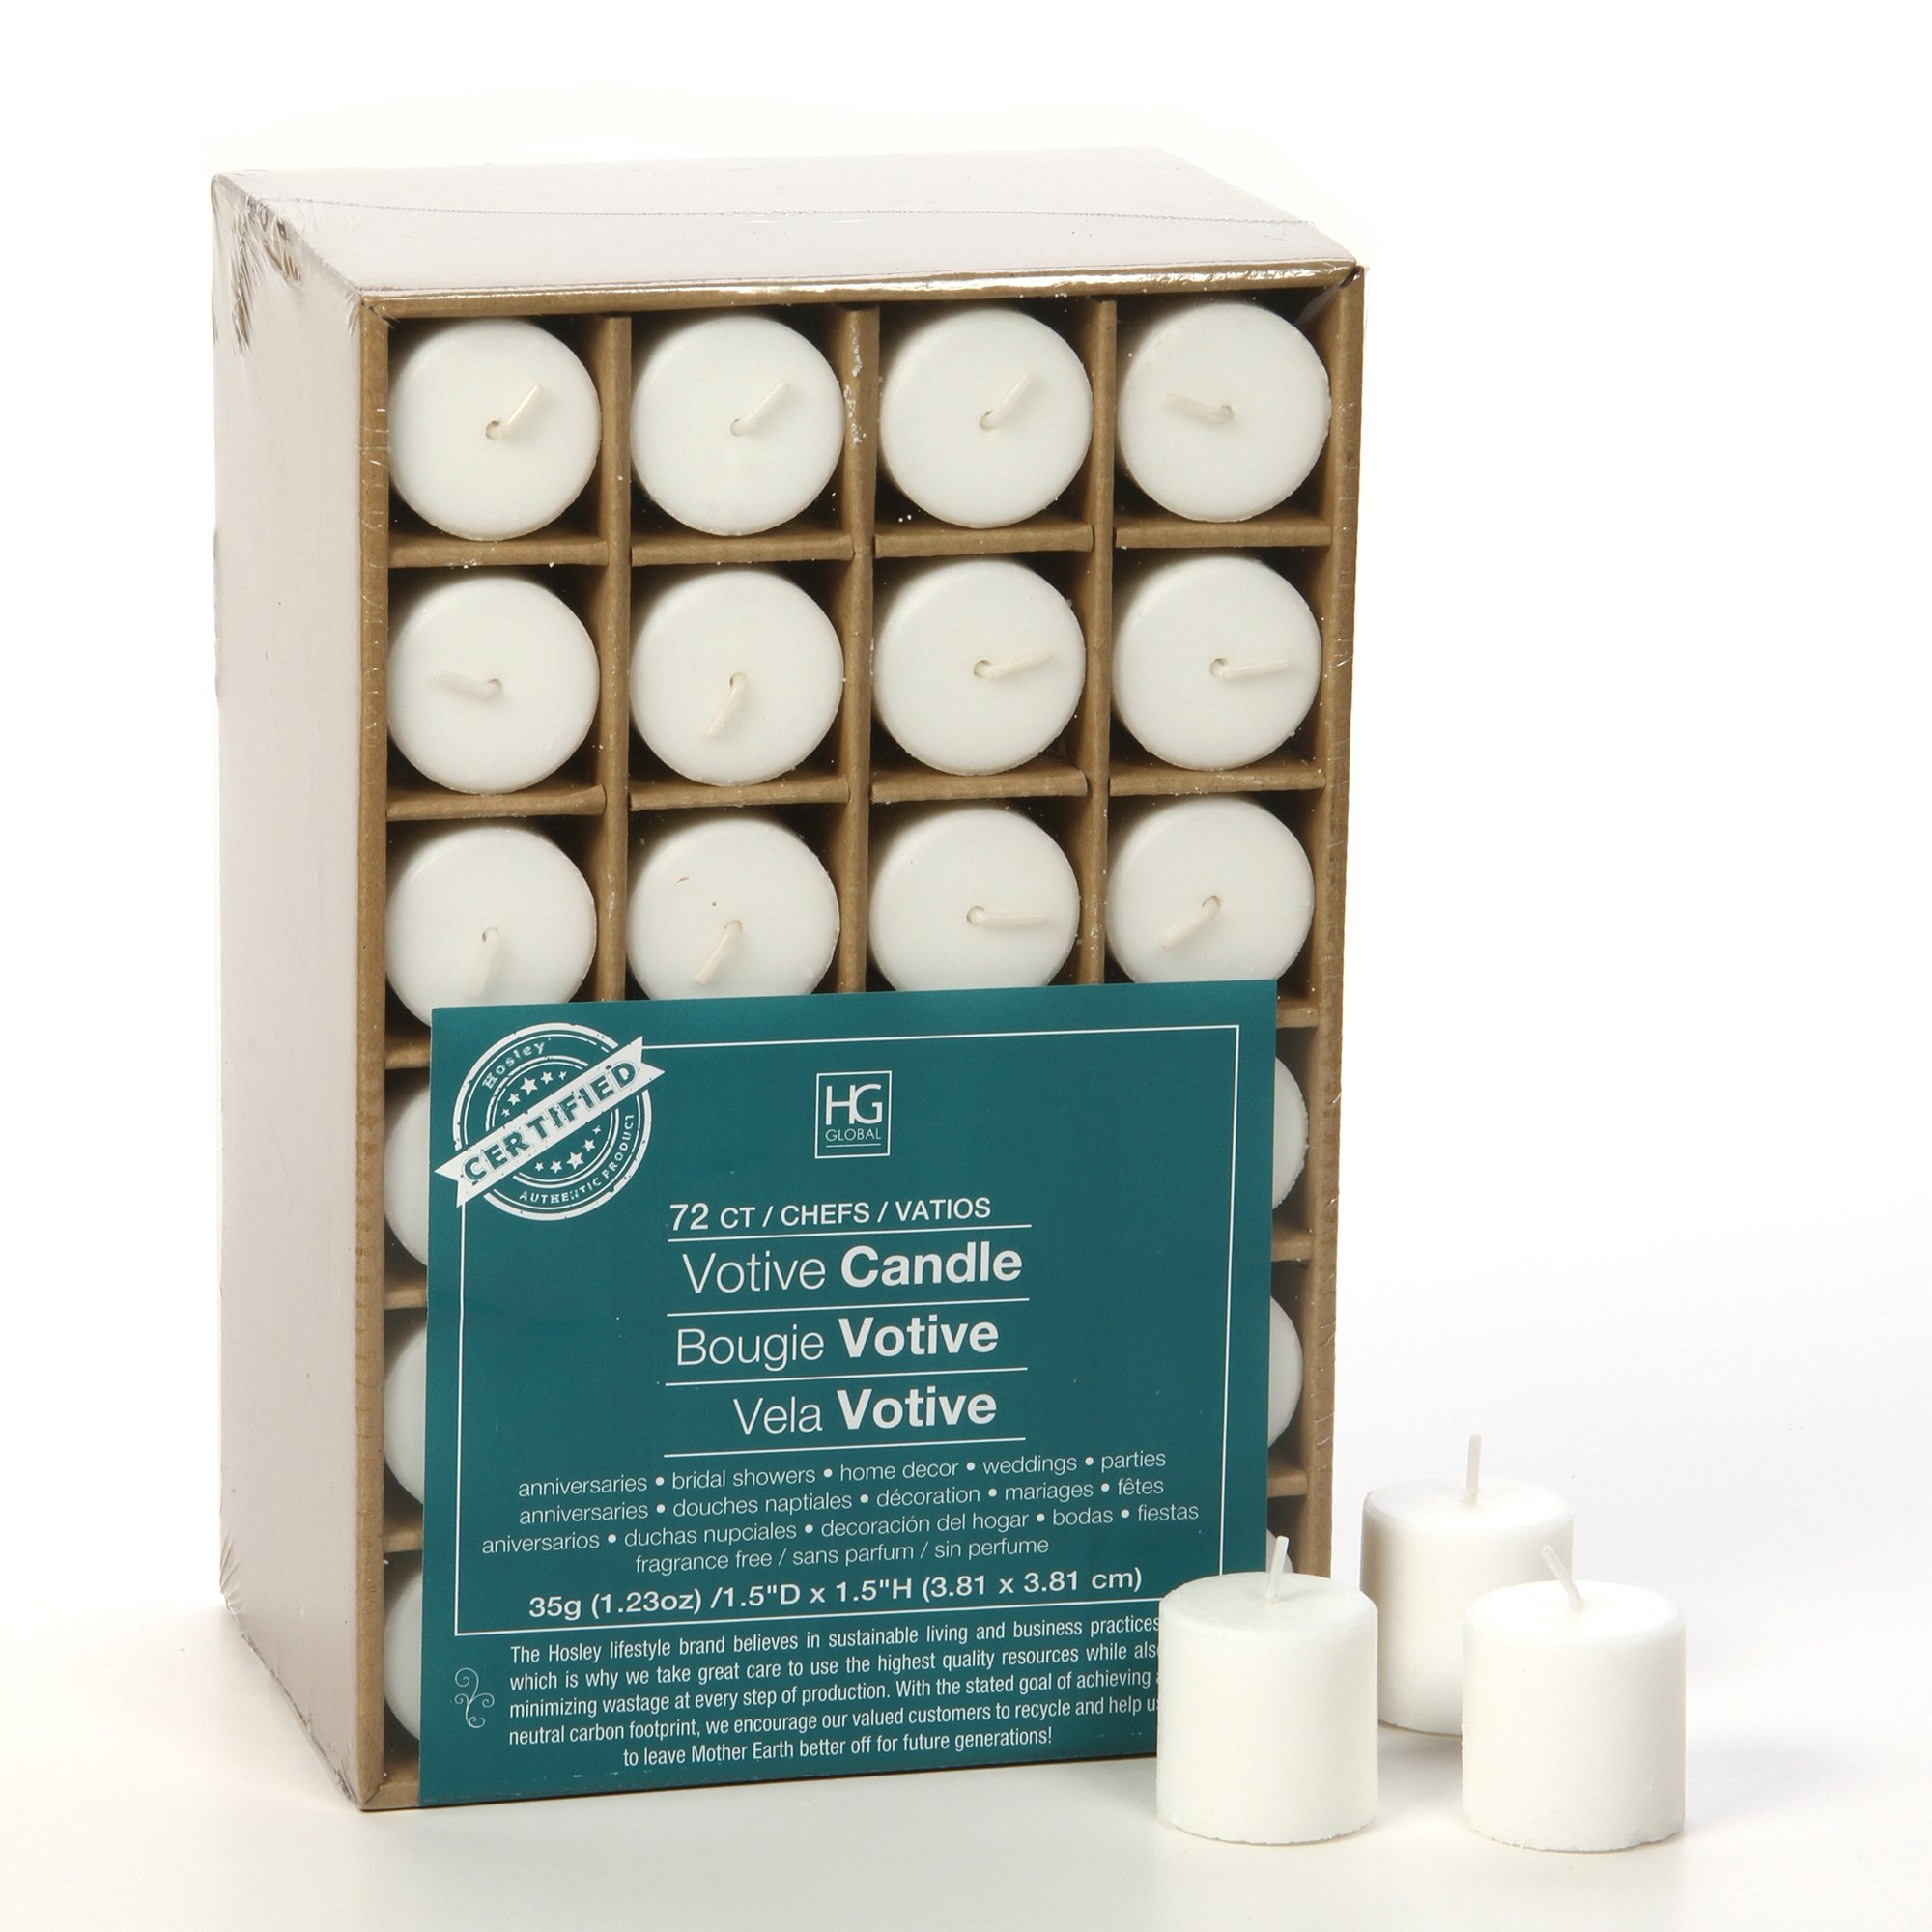 Hosley Set of 72 Unscented White Votive Candles up to 10-hours. Bulk Buy. Wax Blend. Ideal for Weddings, Birthday, Aromatherapy, Party, Candle Gardens O2 by Hosley